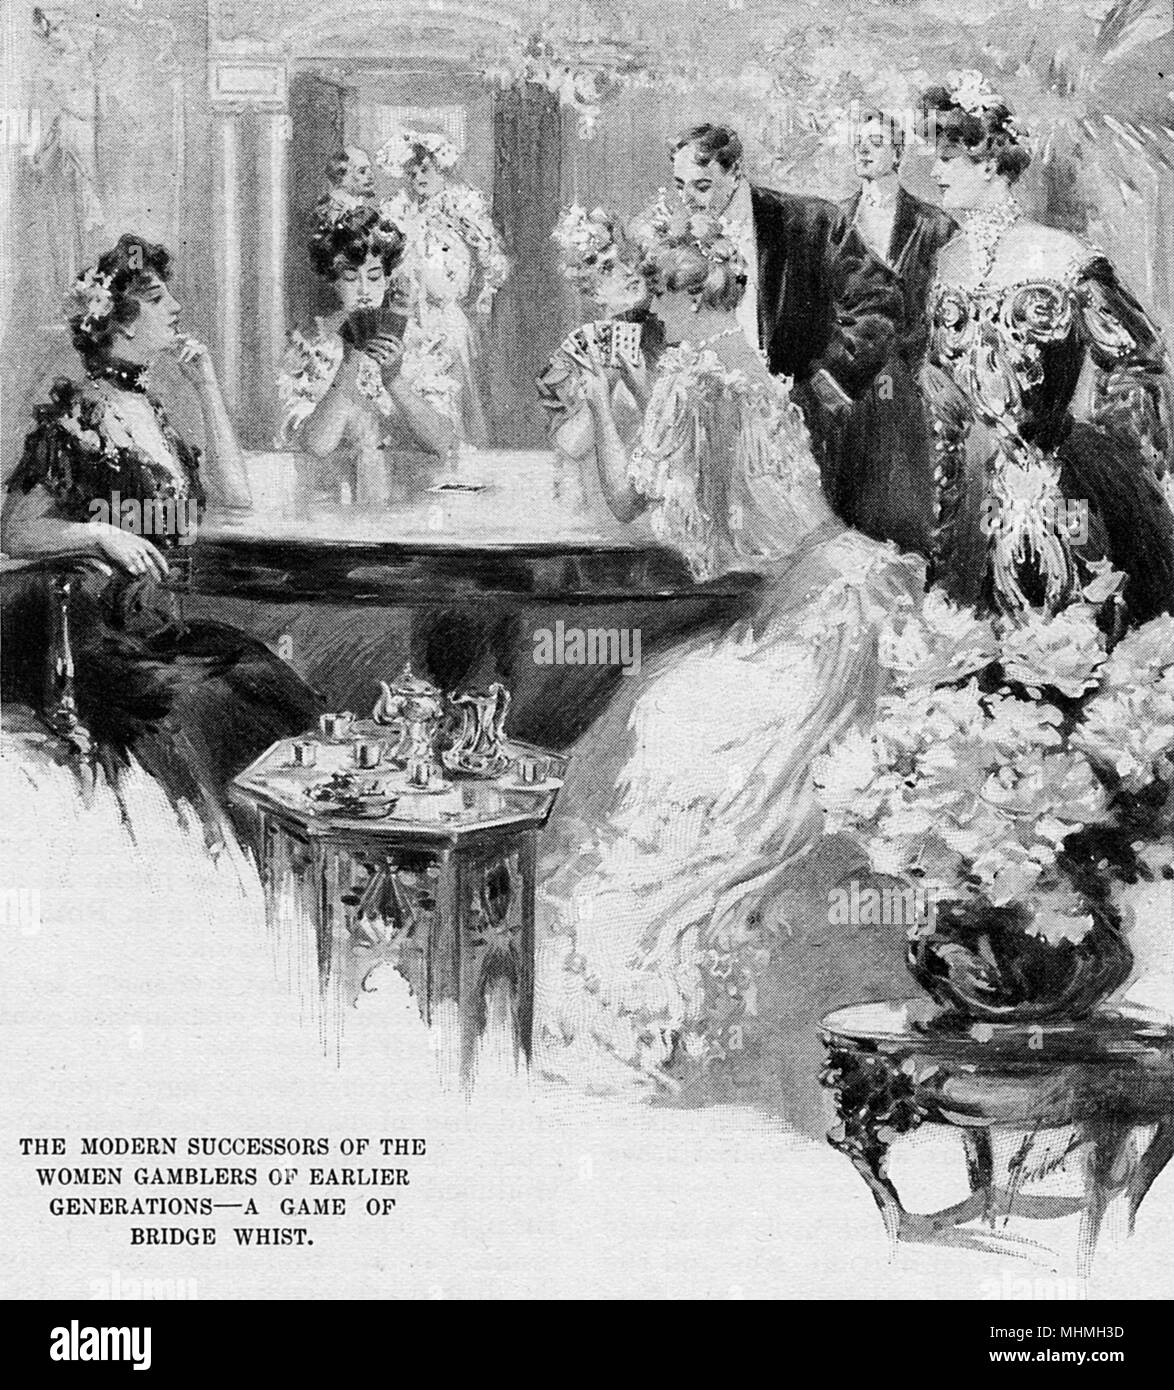 BRIDGE The modern successors of the women gamblers of earlier generations - a game of Bridge Whist.     Date: 1903-4 - Stock Image